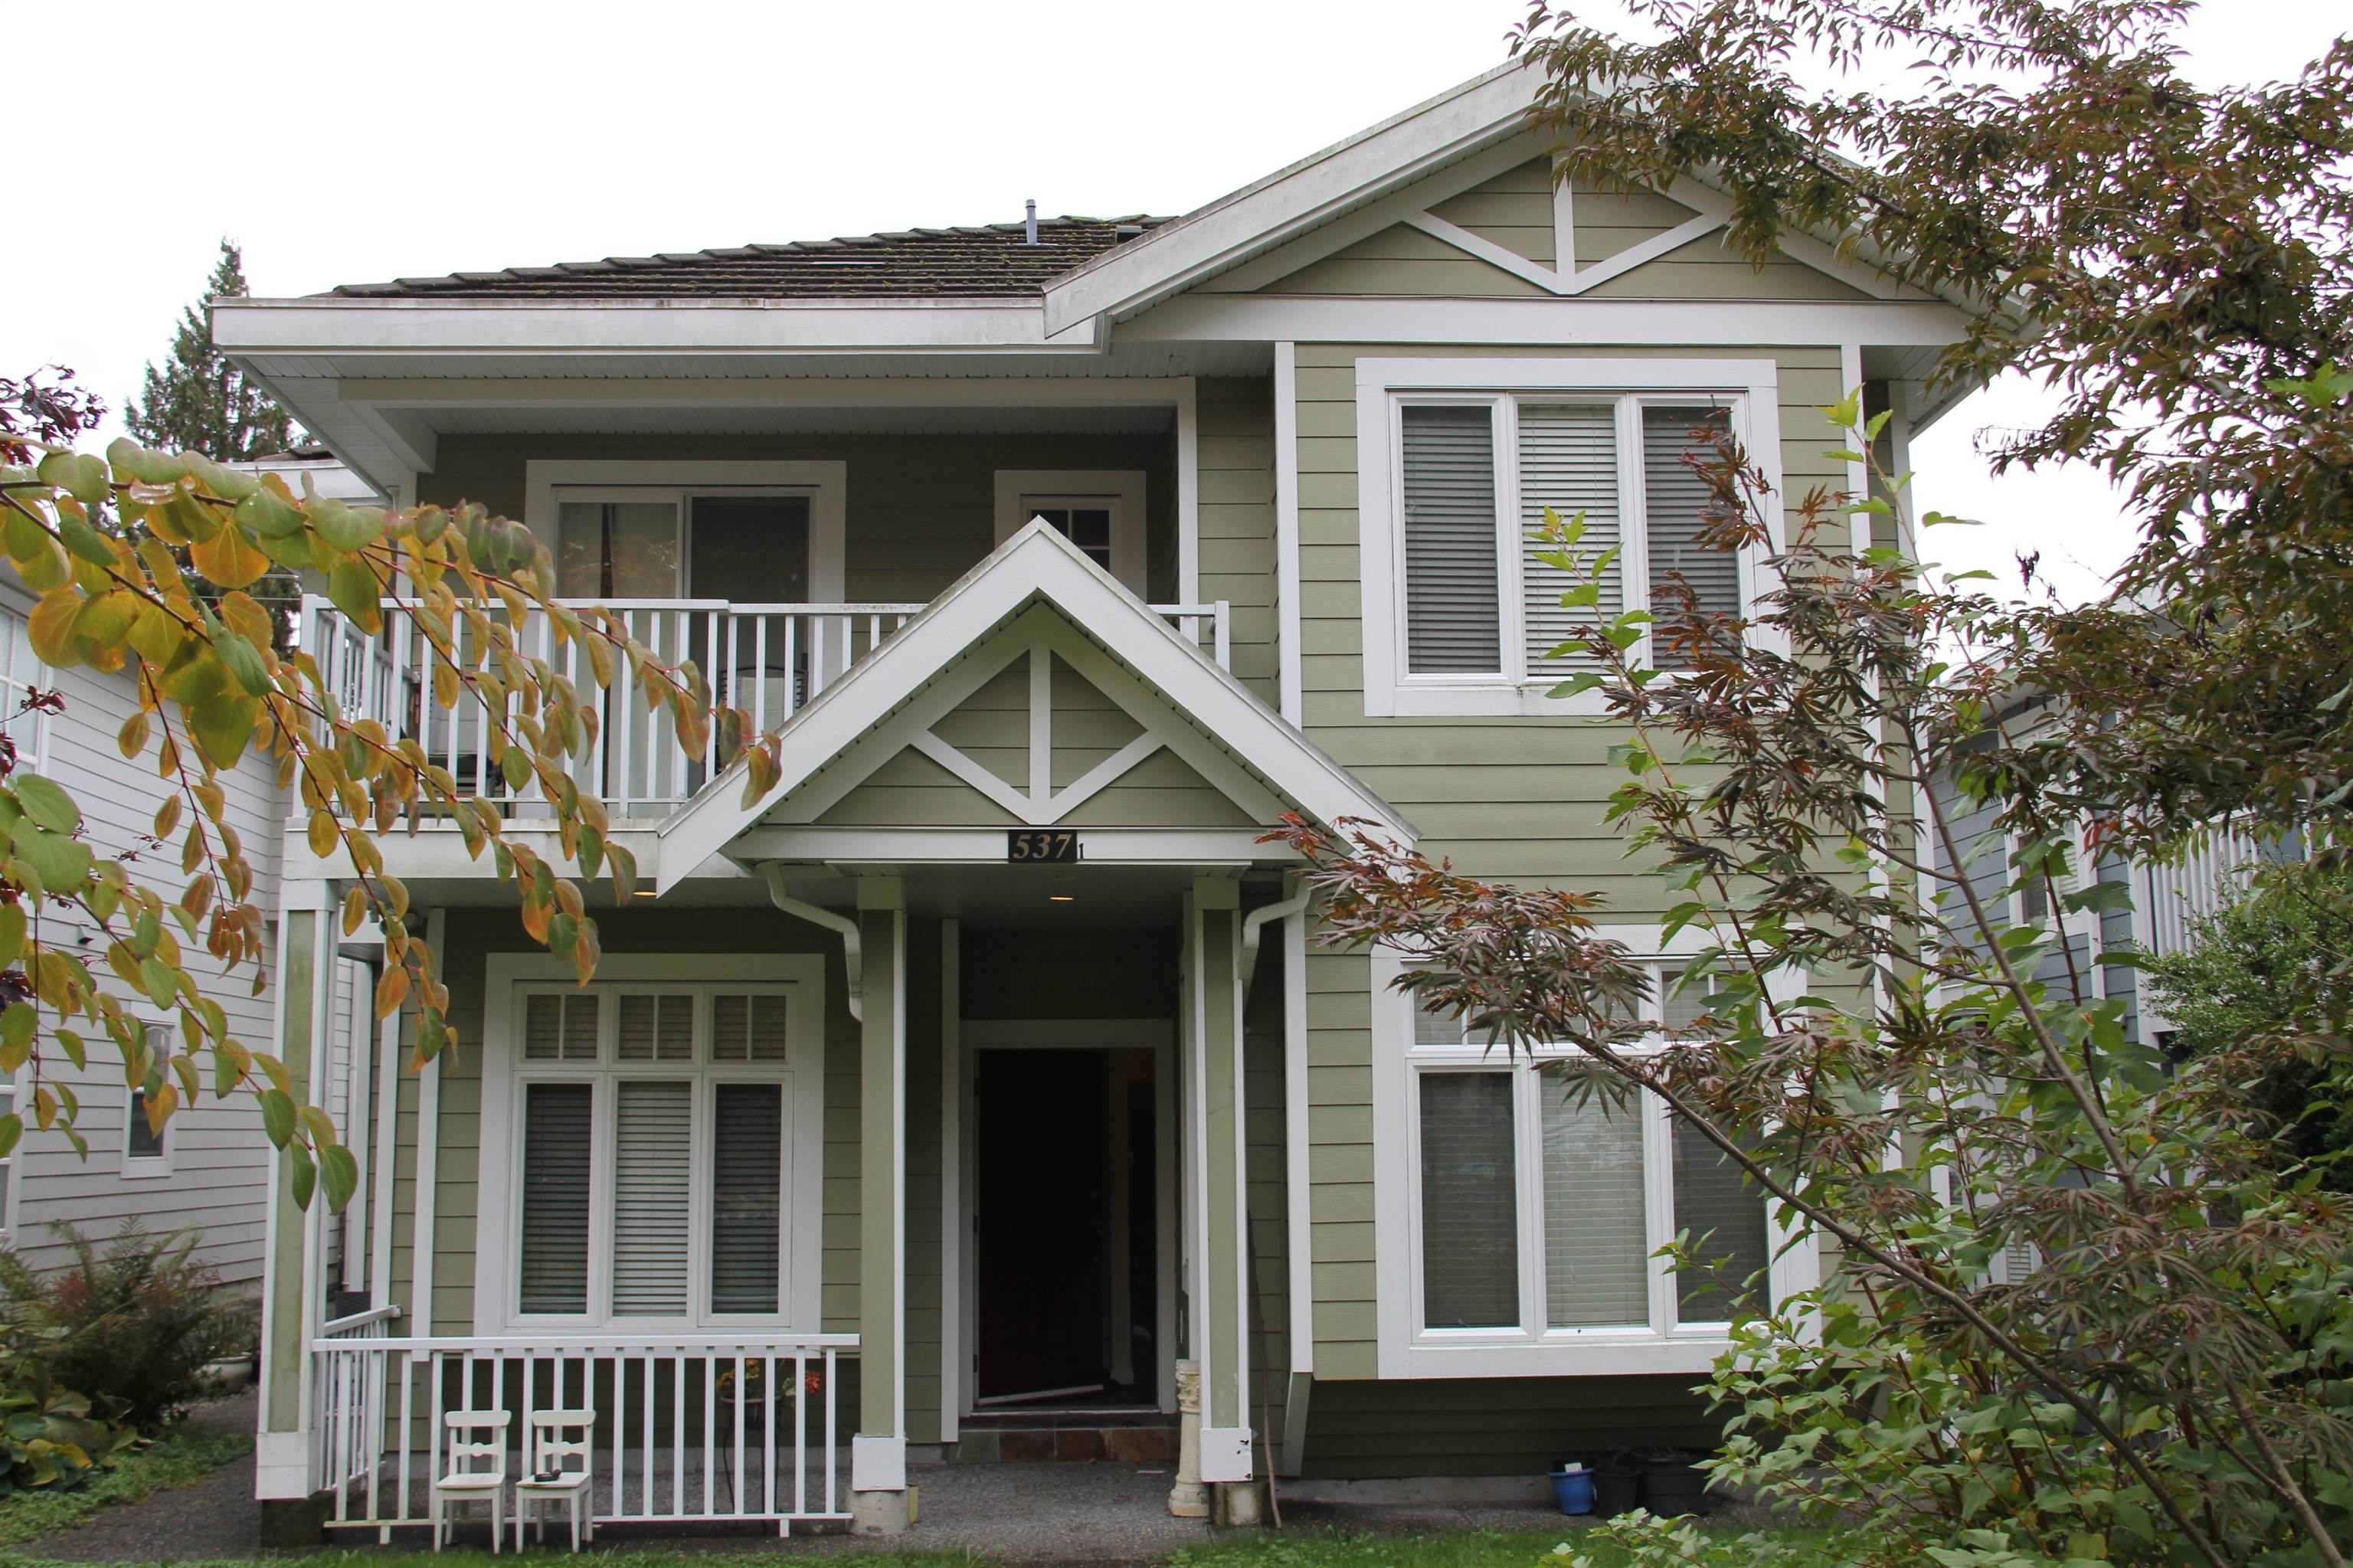 537 W 14TH STREET - Central Lonsdale House/Single Family for sale, 5 Bedrooms (R2626900) - #1